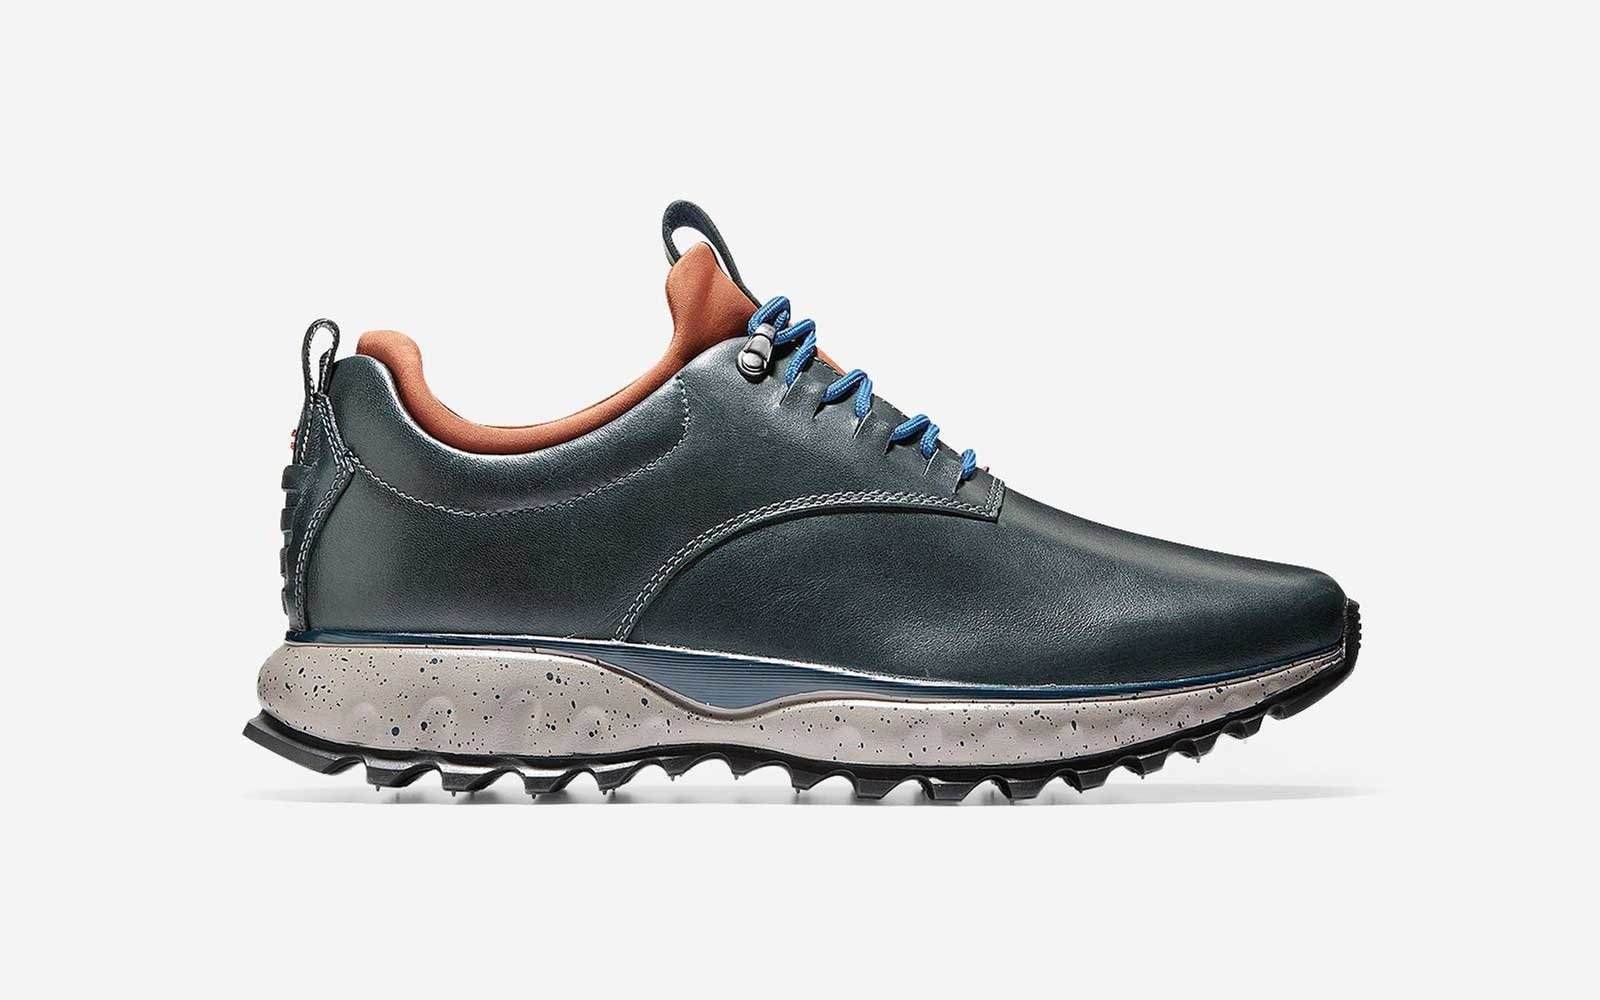 d9faf73d2cf3 Cole Haan Men s Zerogrand All-terrain Waterproof Sneaker. Cole Haan  Waterproof Boots